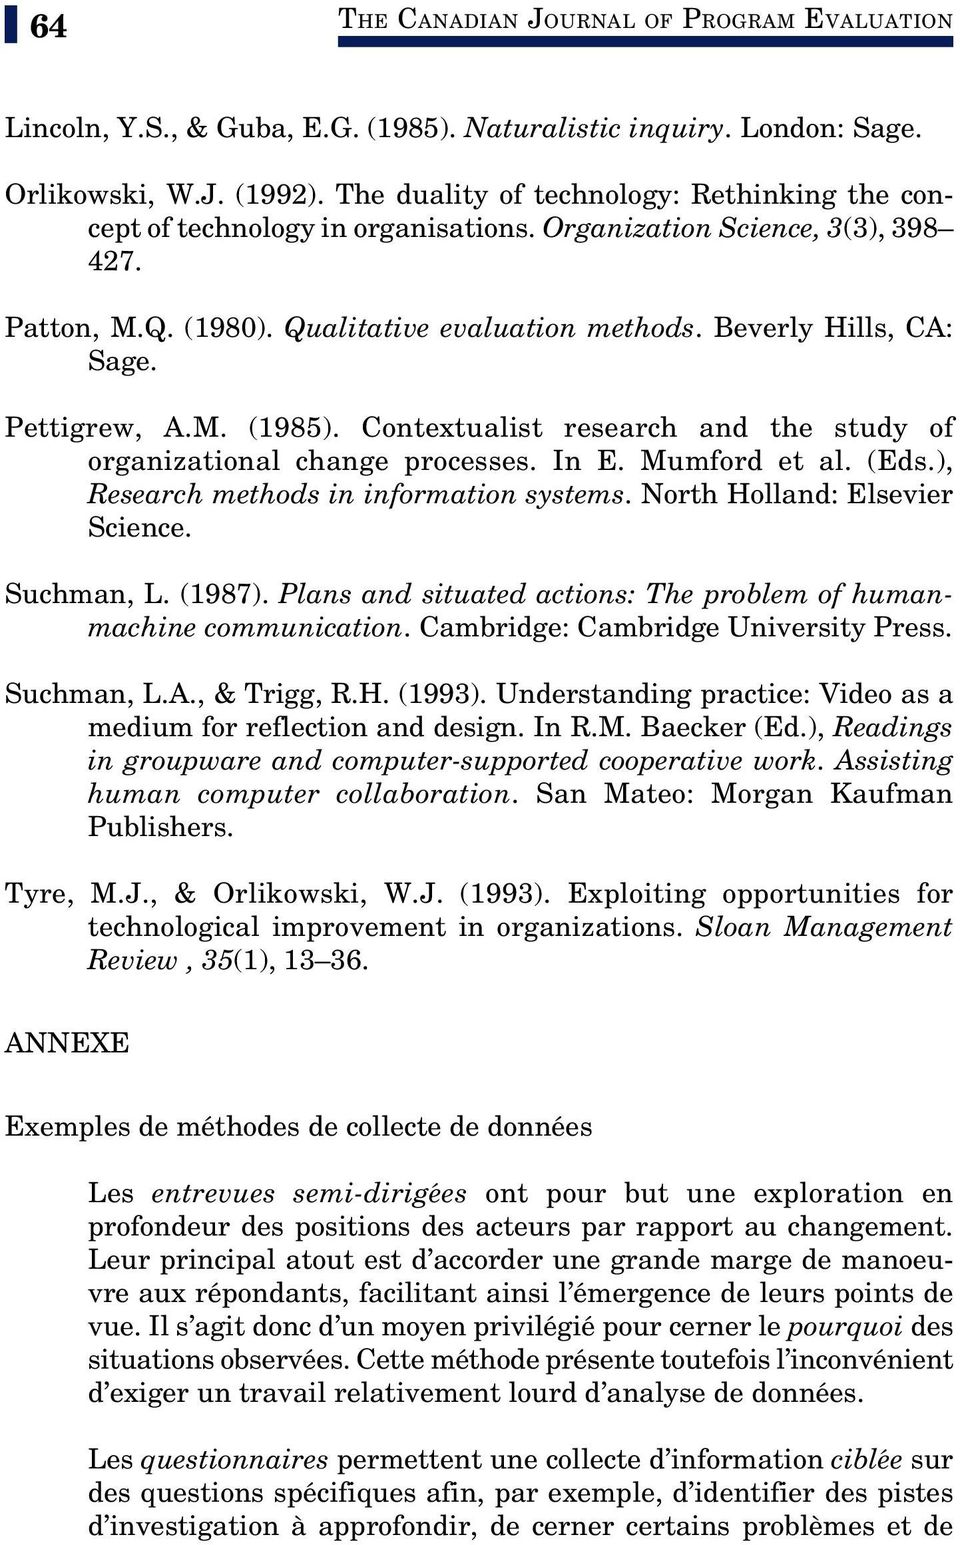 Pettigrew, A.M. (1985). Contextualist research and the study of organizational change processes. In E. Mumford et al. (Eds.), Research methods in information systems. North Holland: Elsevier Science.